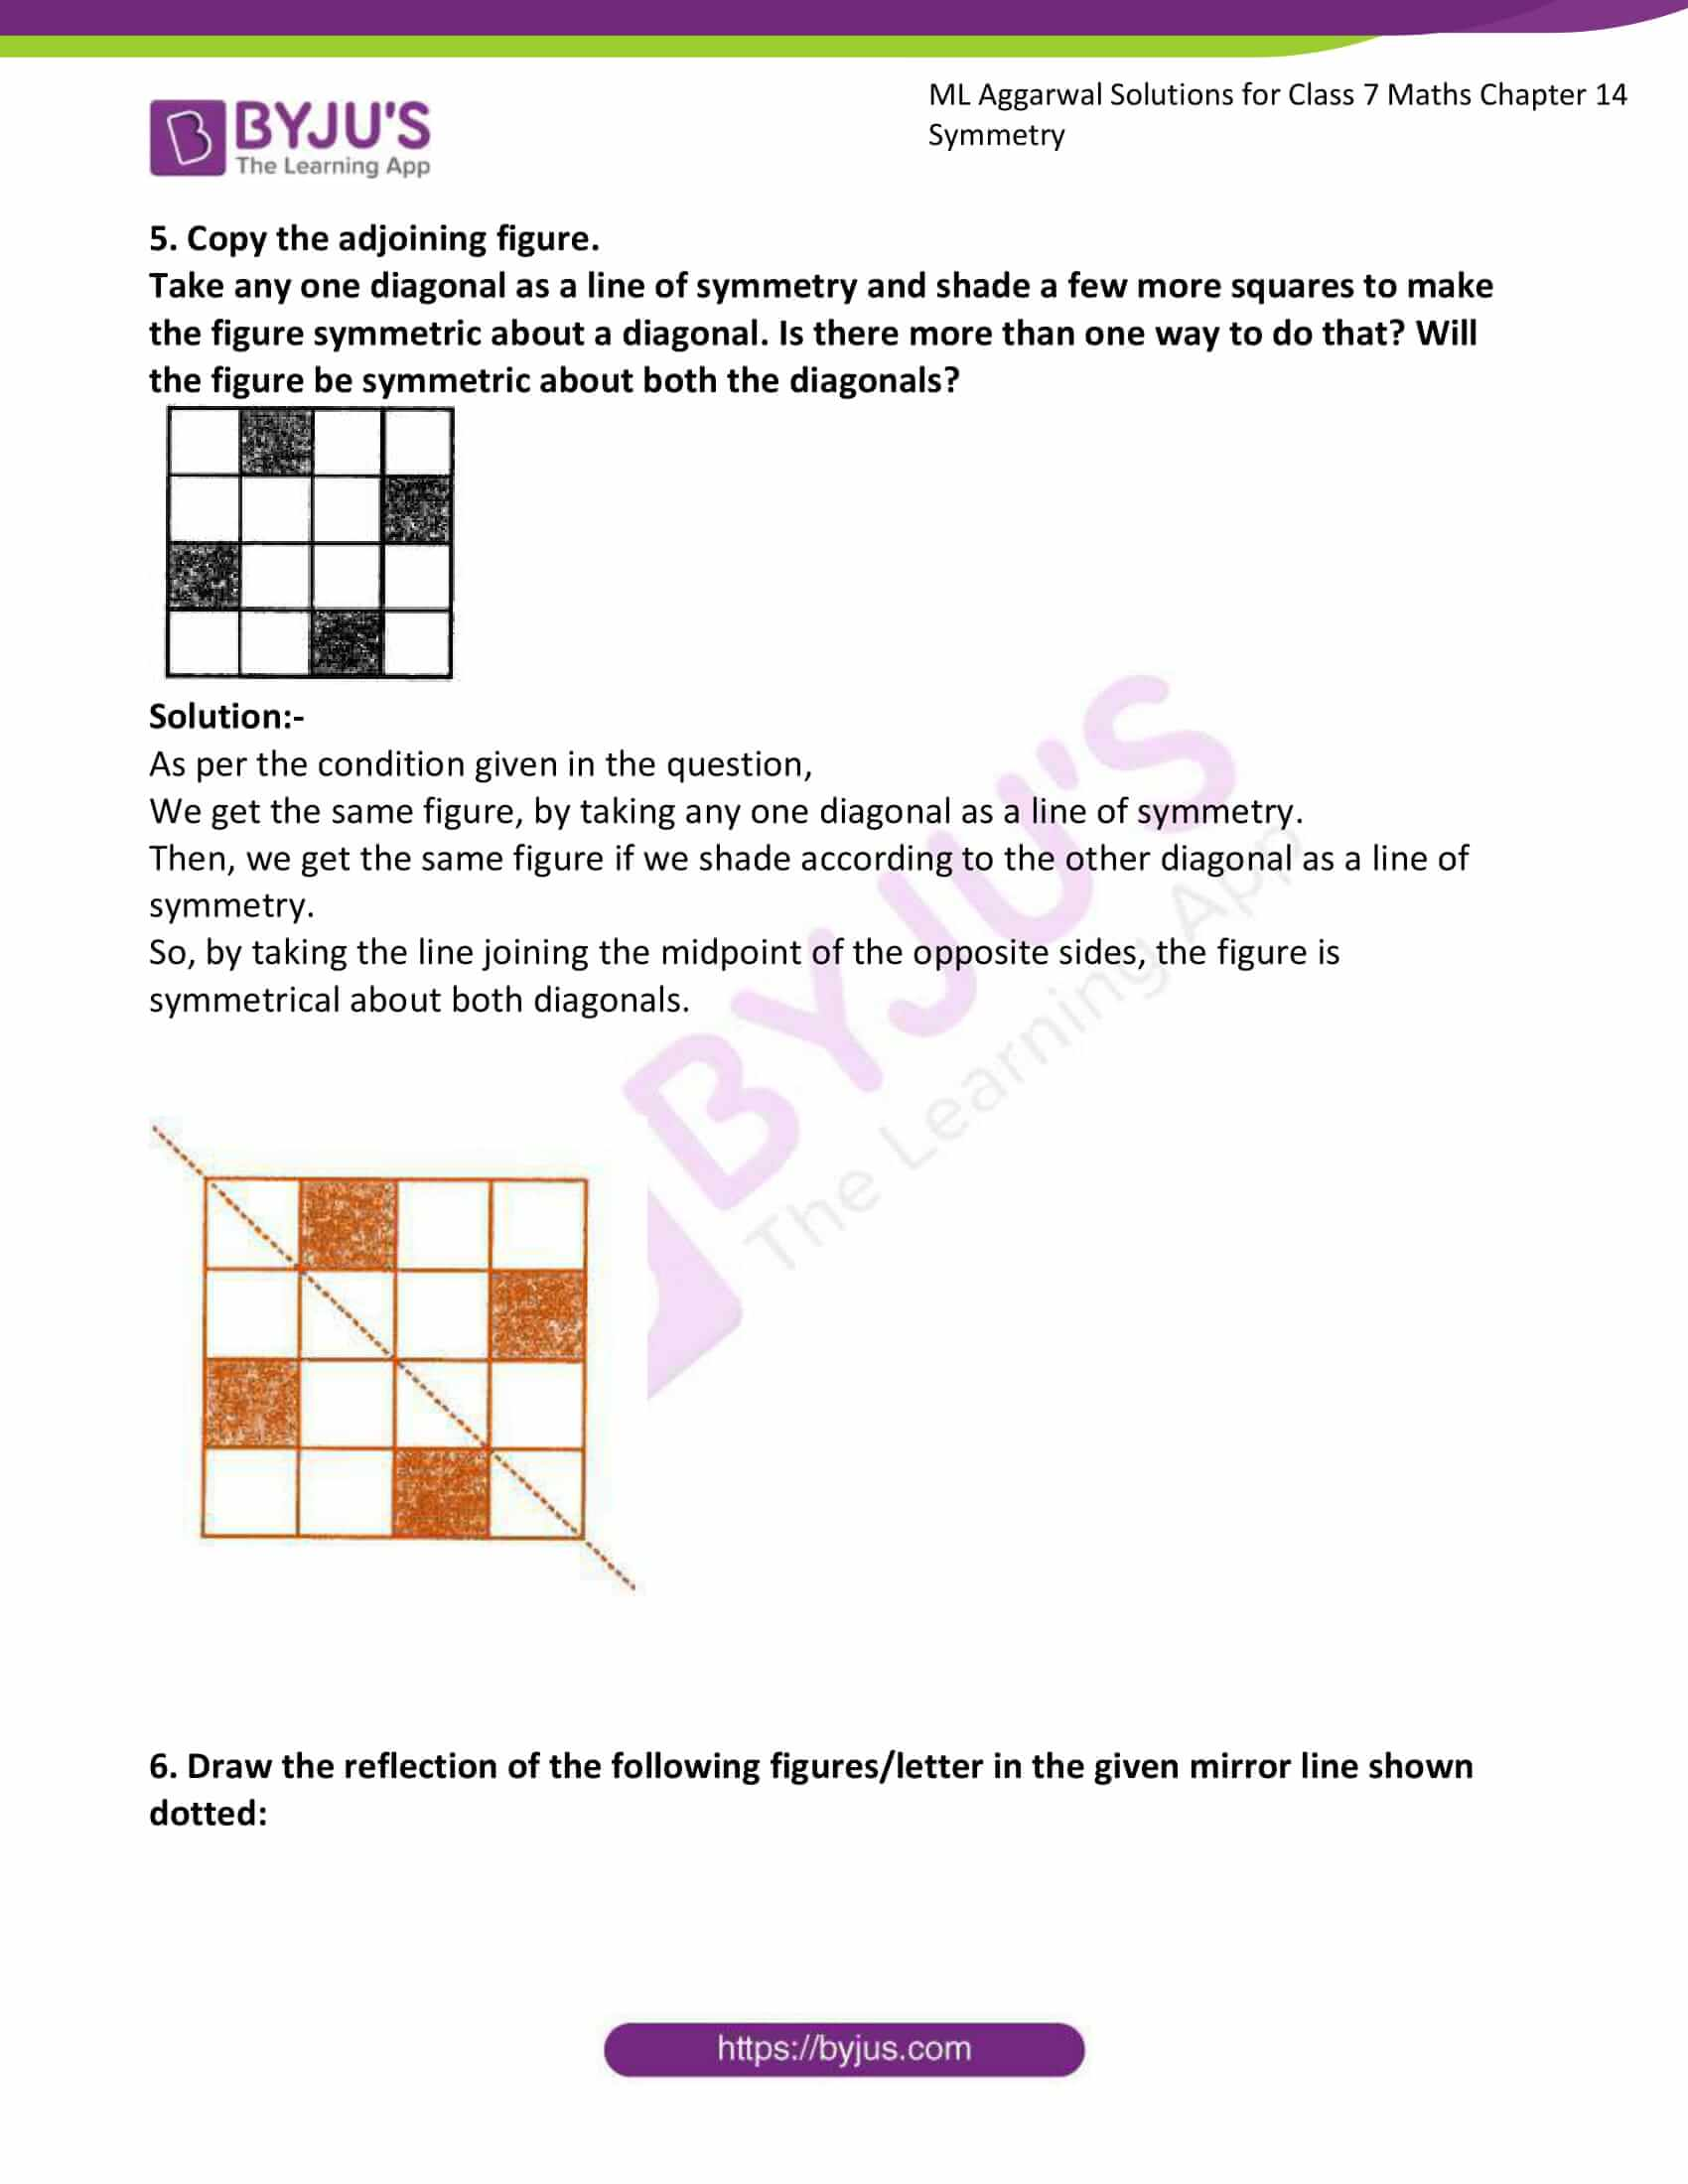 ml aggarwal solutions for class 7 maths chapter 14 4